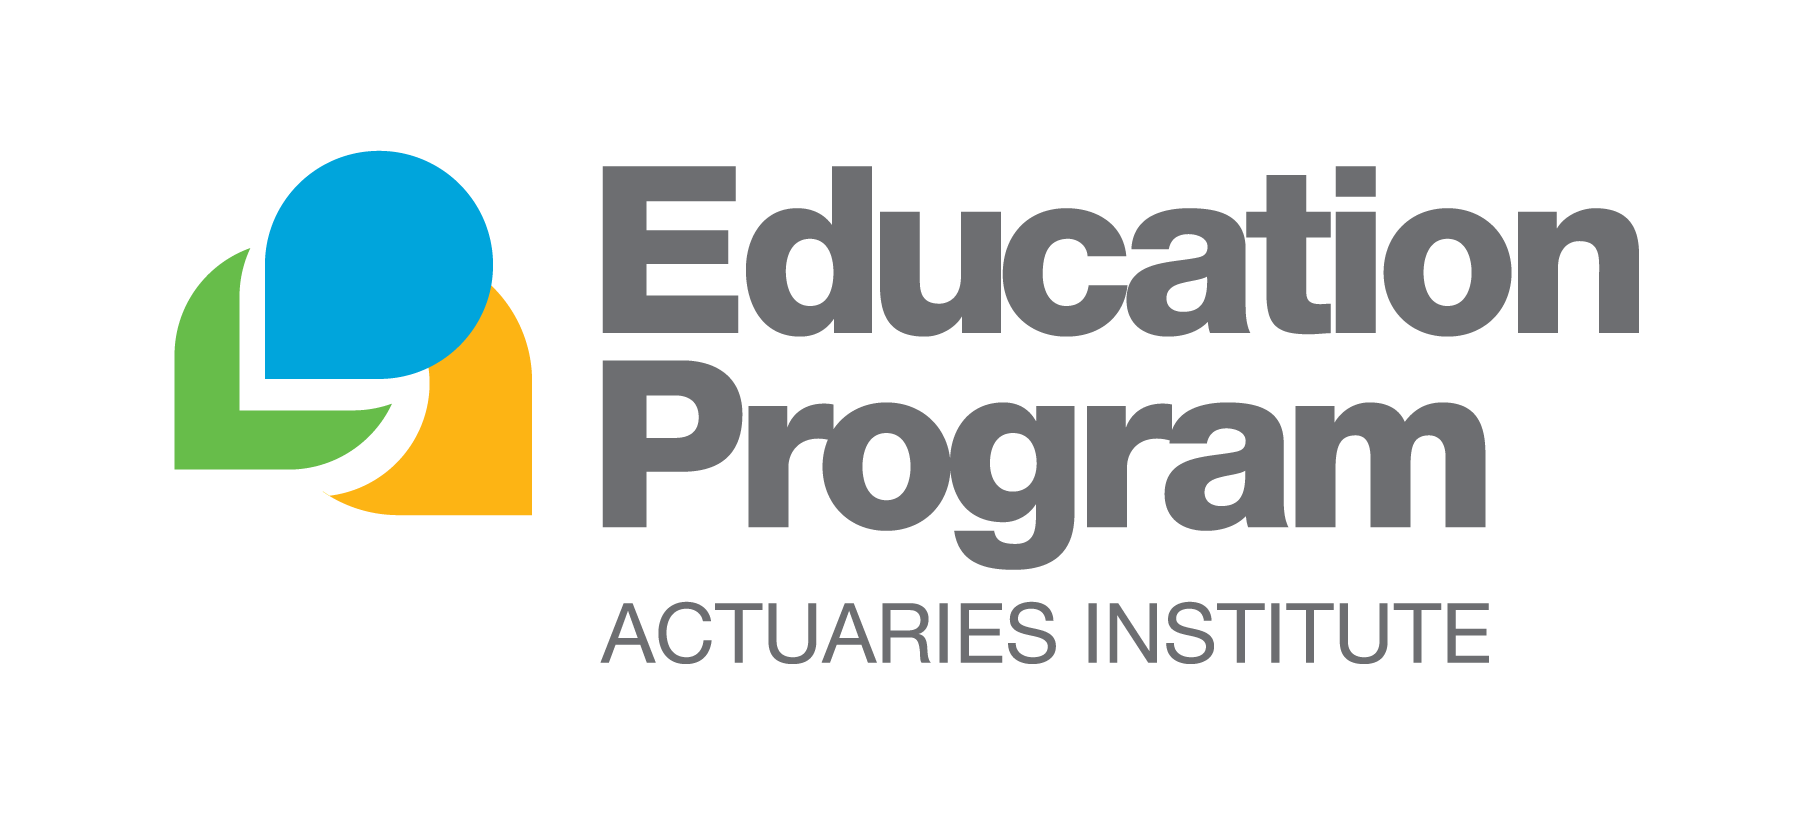 Actuaries Institute_Education Program_Logo_CMYK